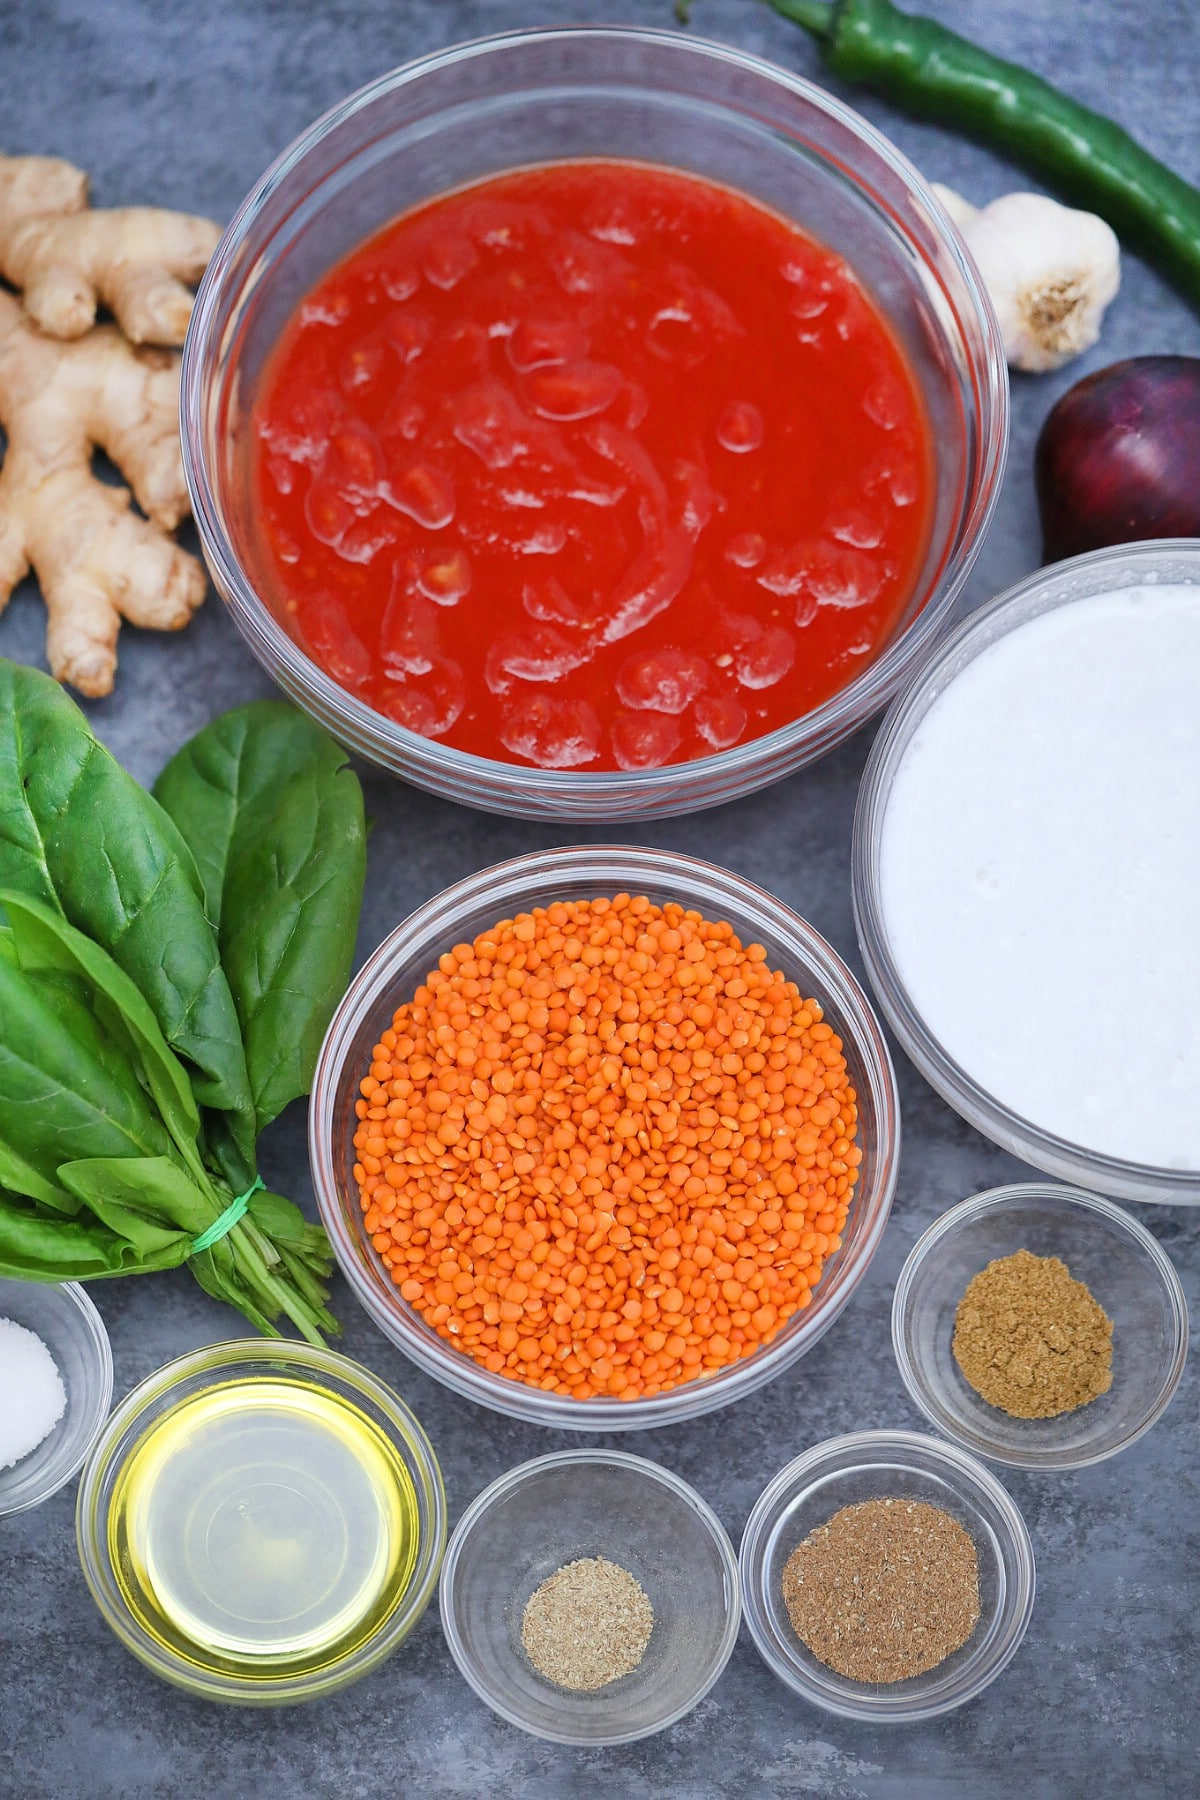 Ingredients for lentil curry